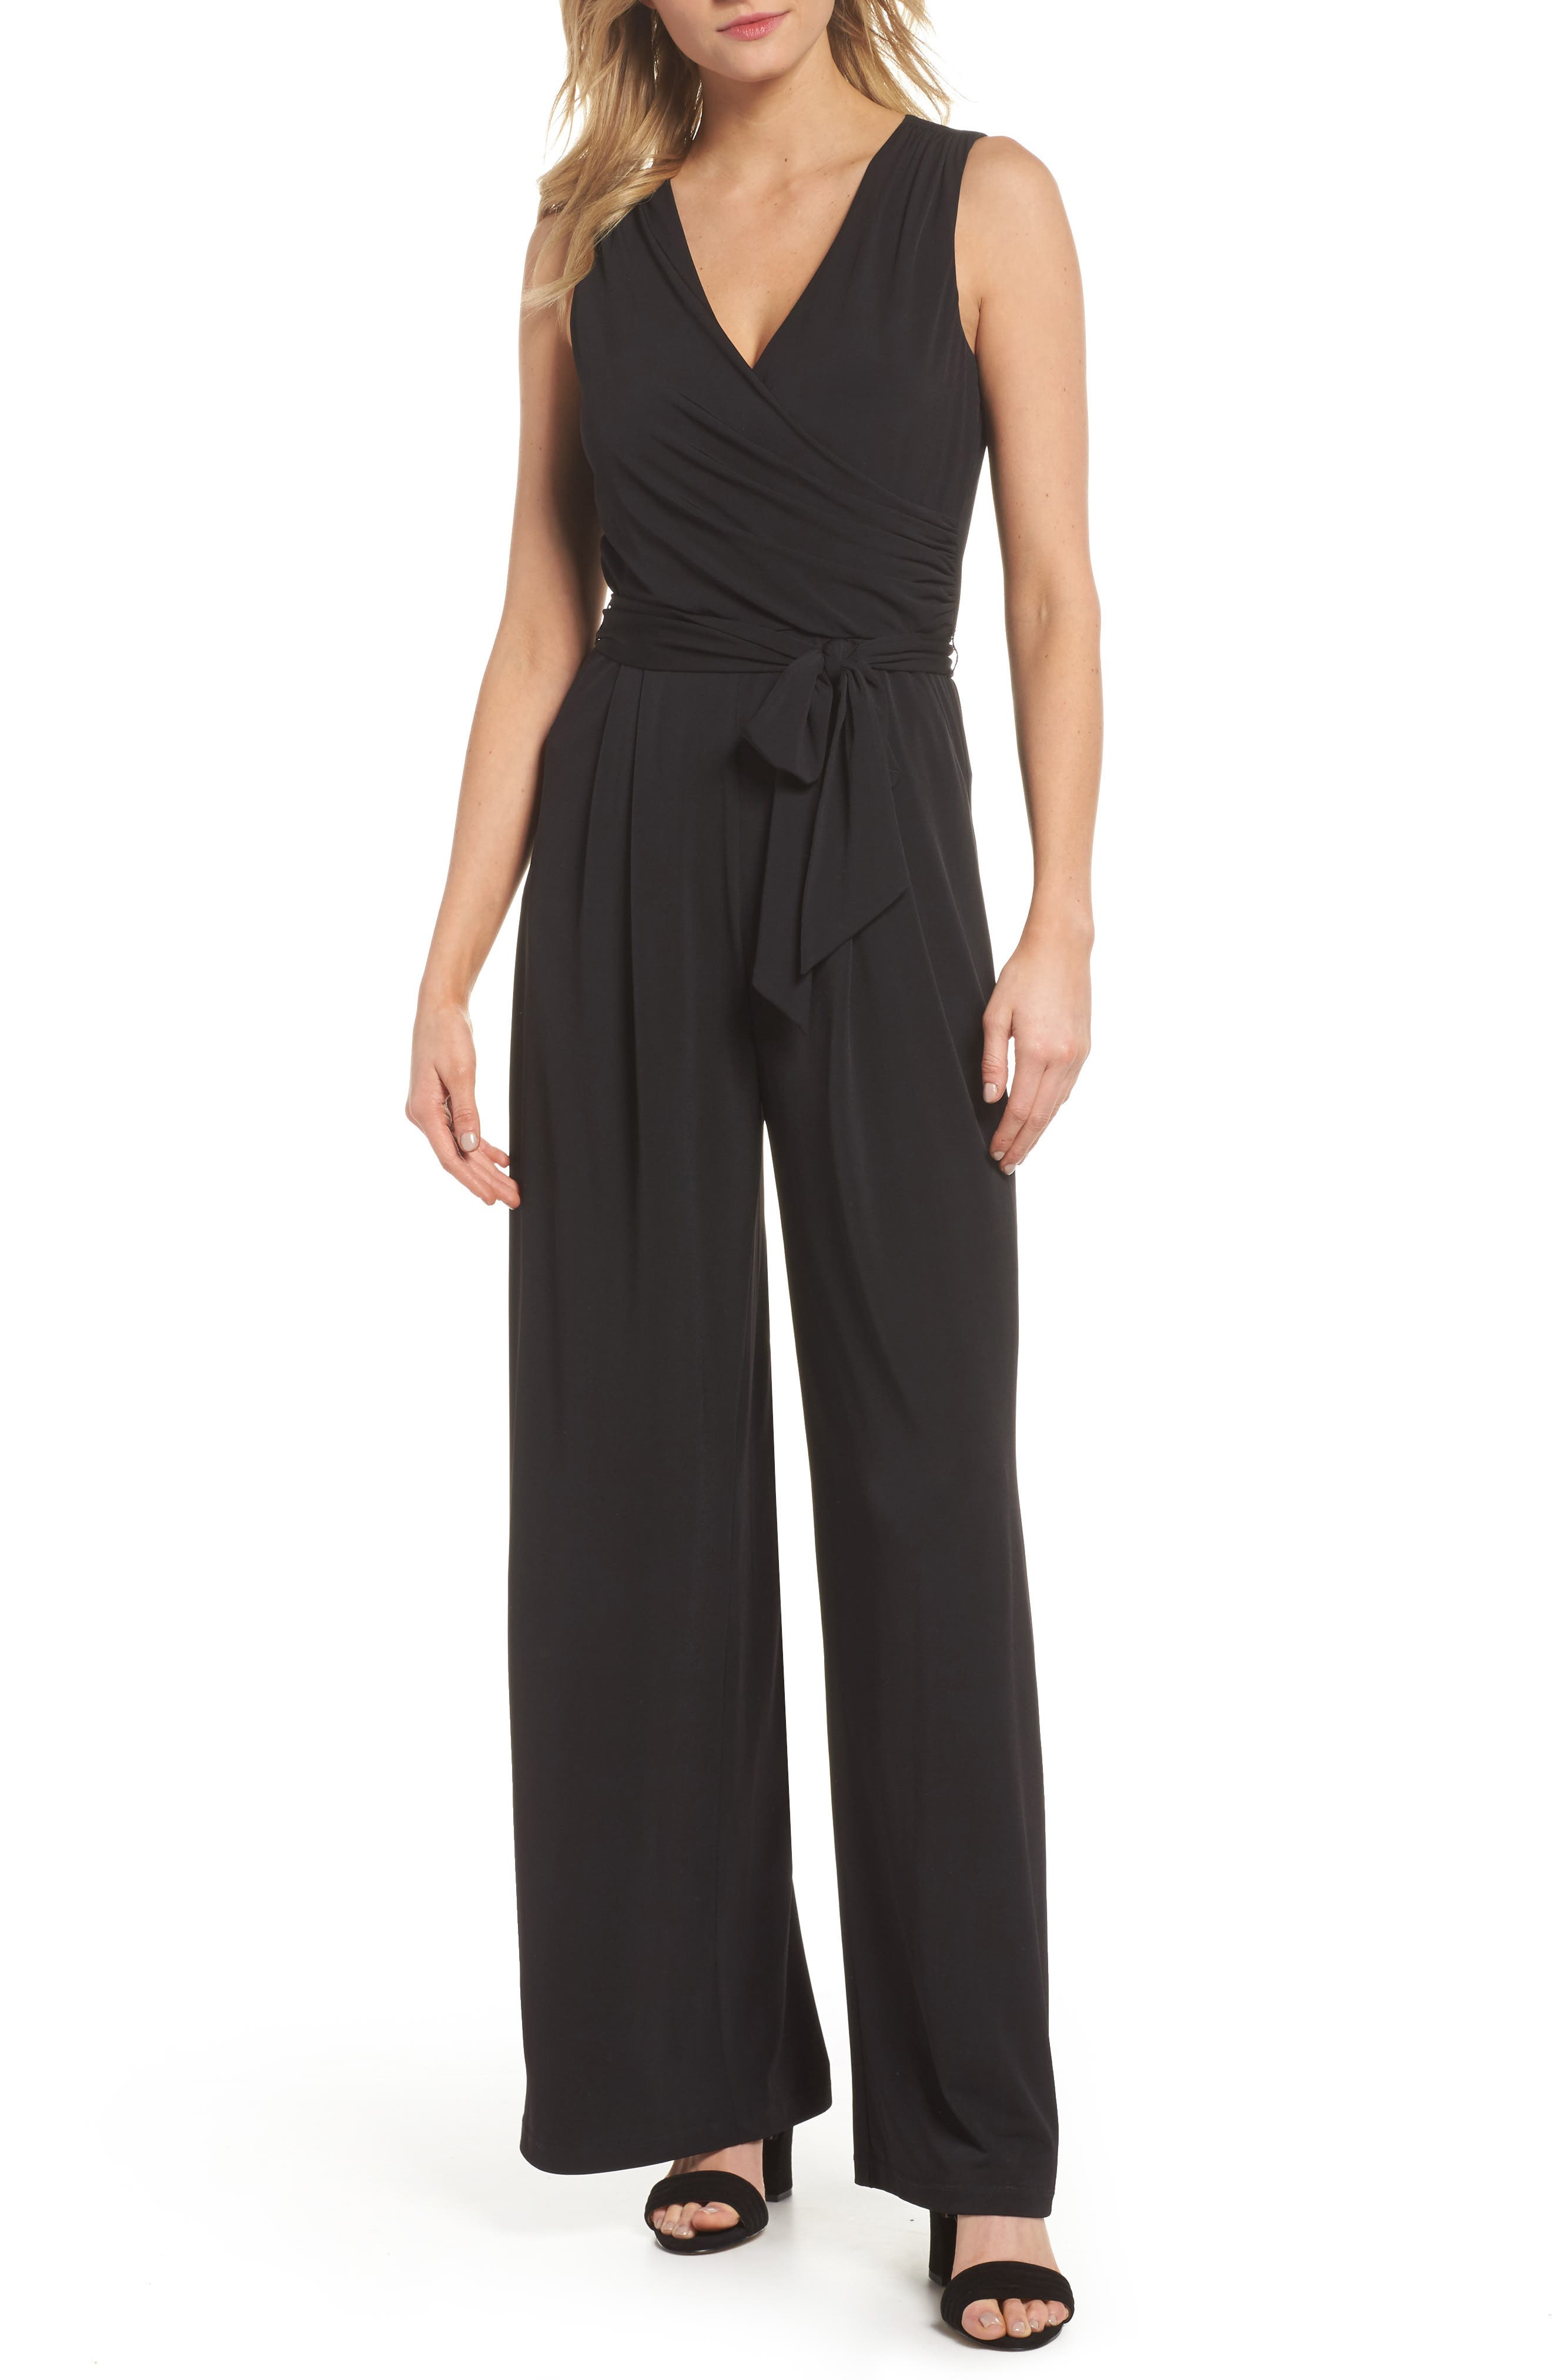 ELIZA J Faux Wrap Wide Leg Jumpsuit, Main, color, BLACK